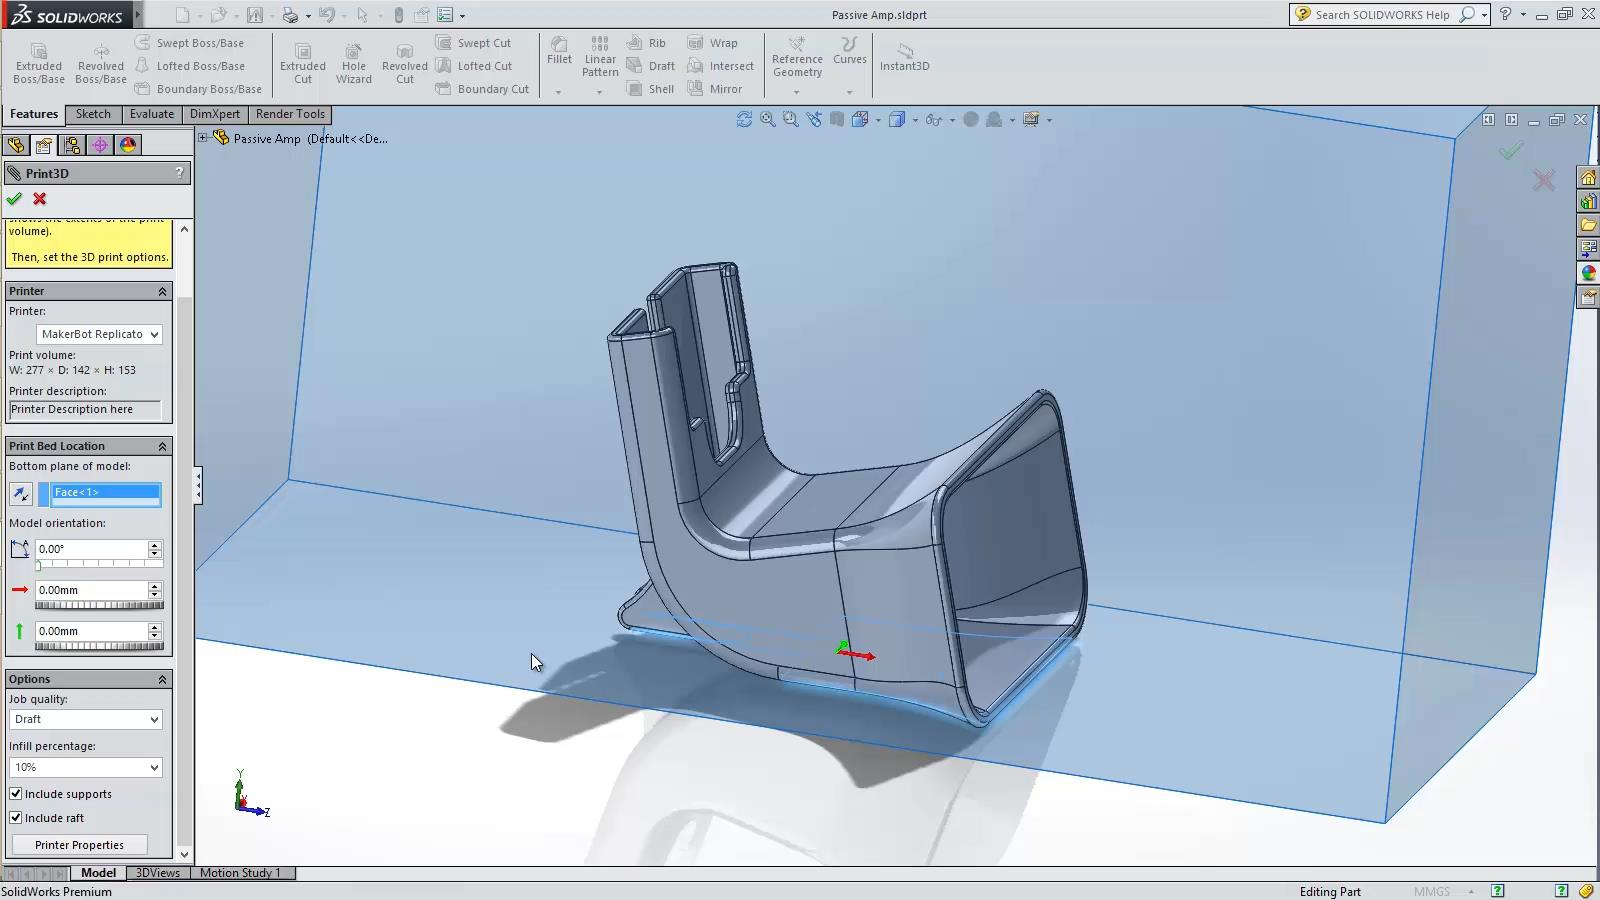 SOLIDWORKS 2015 Sneak Peek: 3D Printing Support